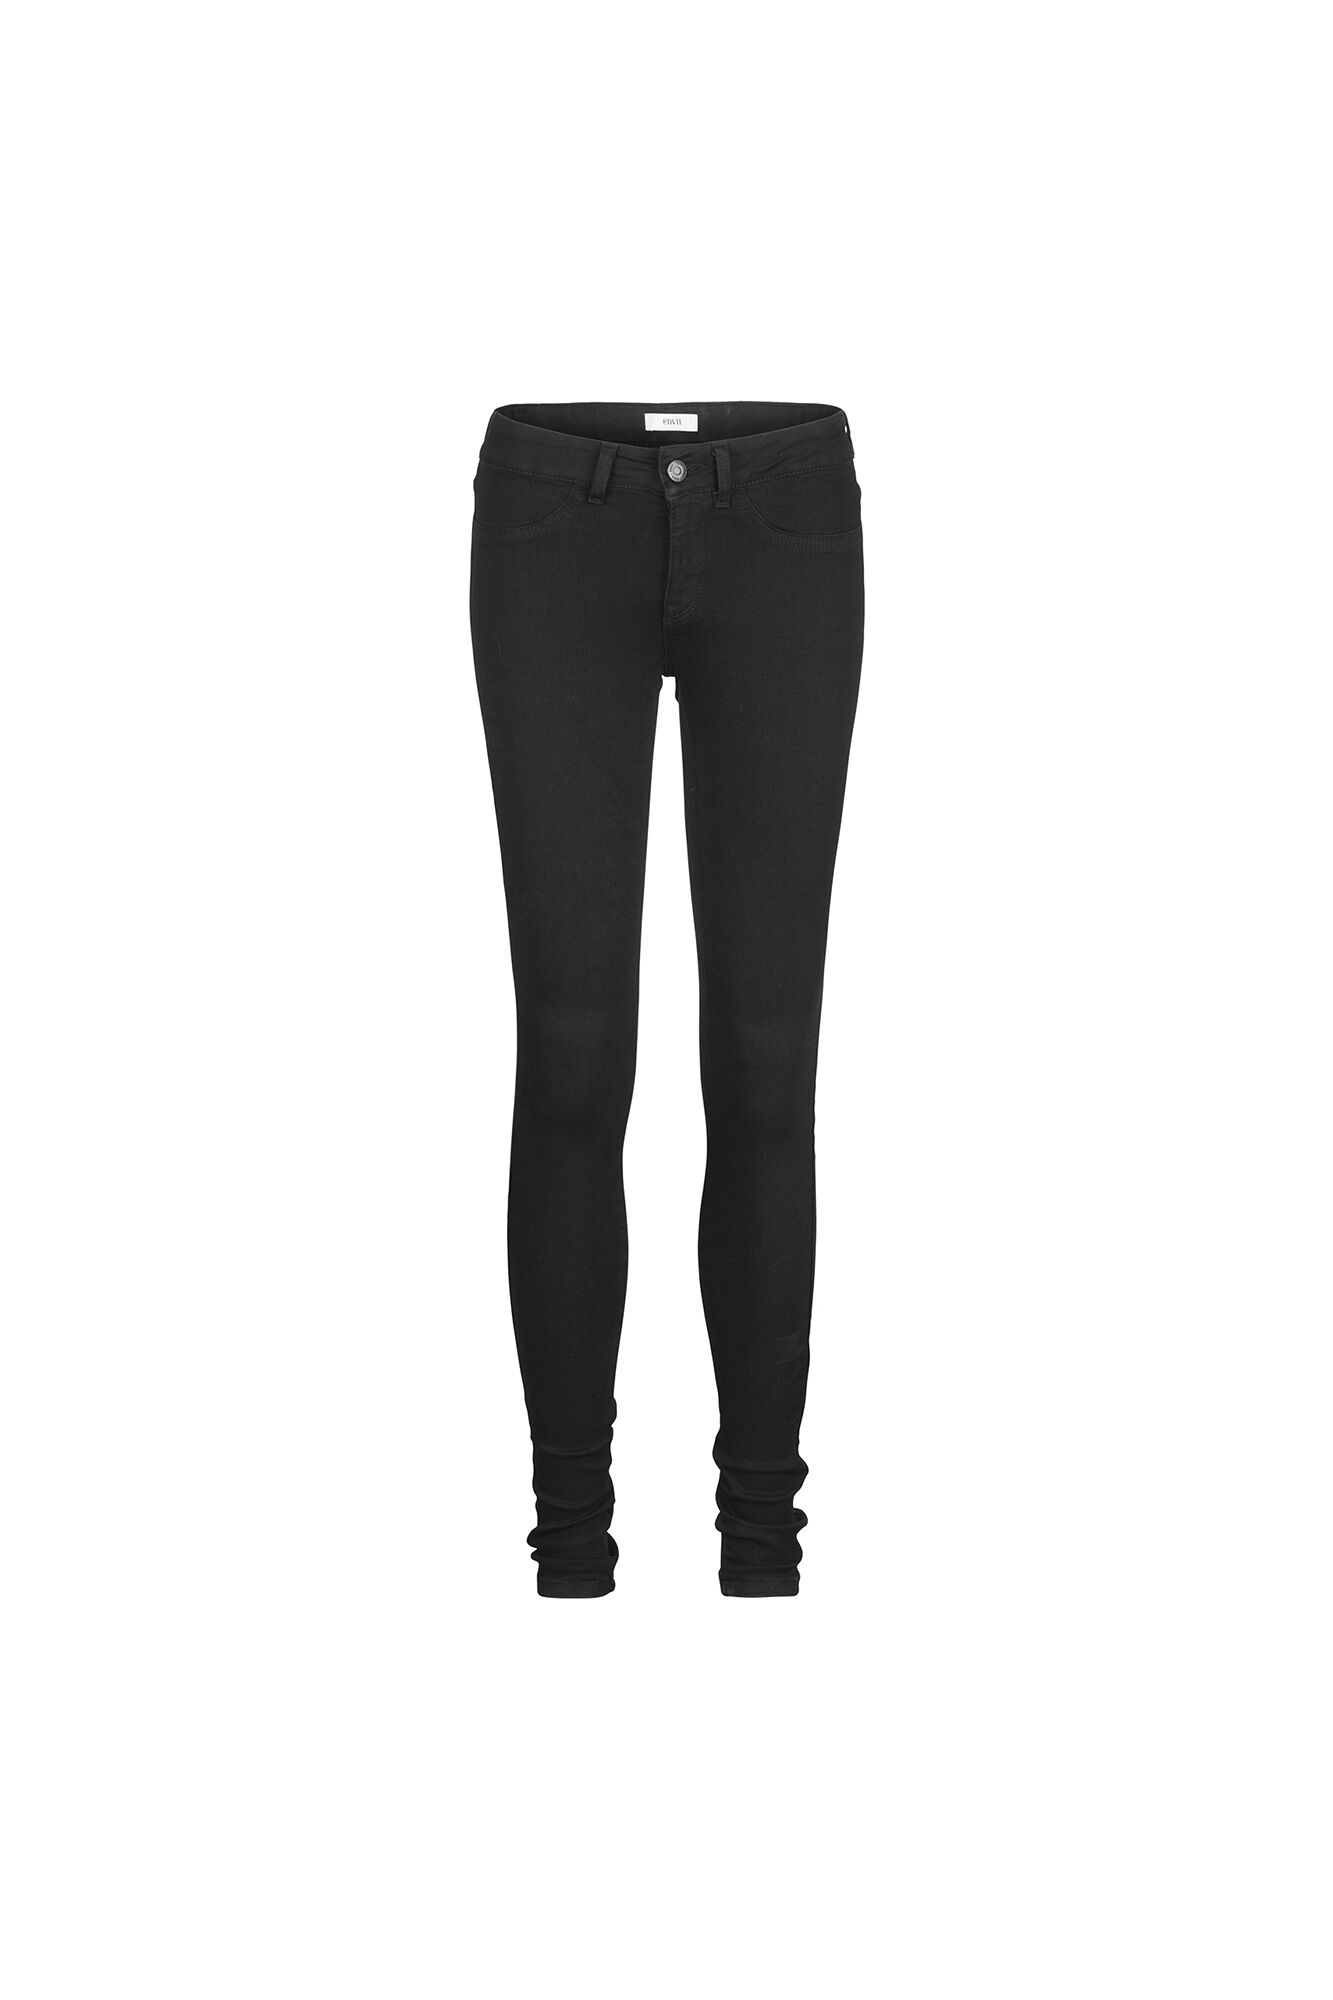 BLAIR JEANS BLACK 6291, BLACK